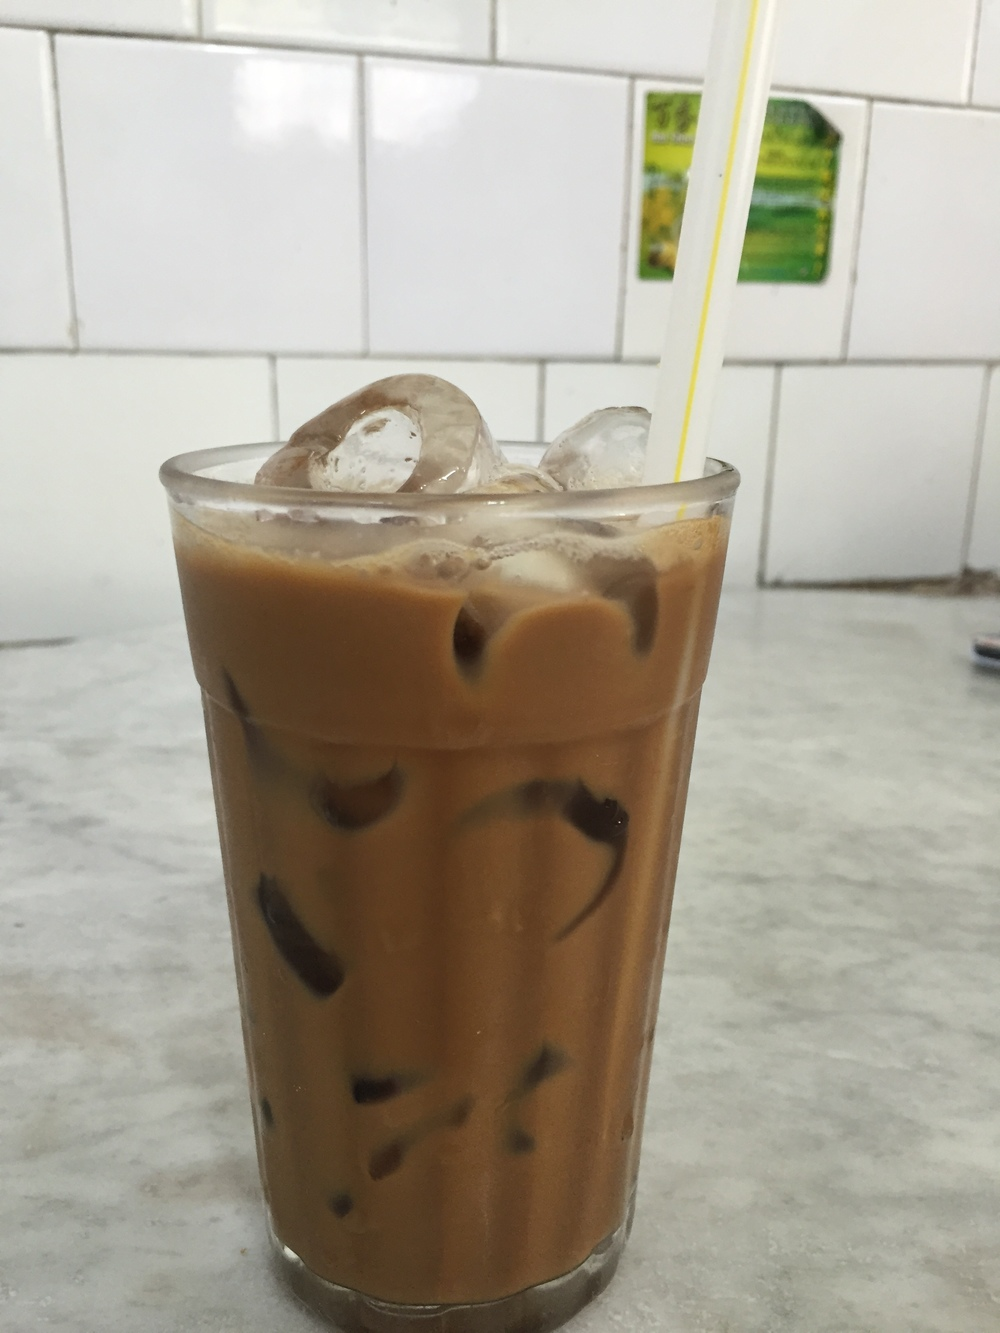 Nothing like a famous Ipoh milk tea after a long hot day outside :)